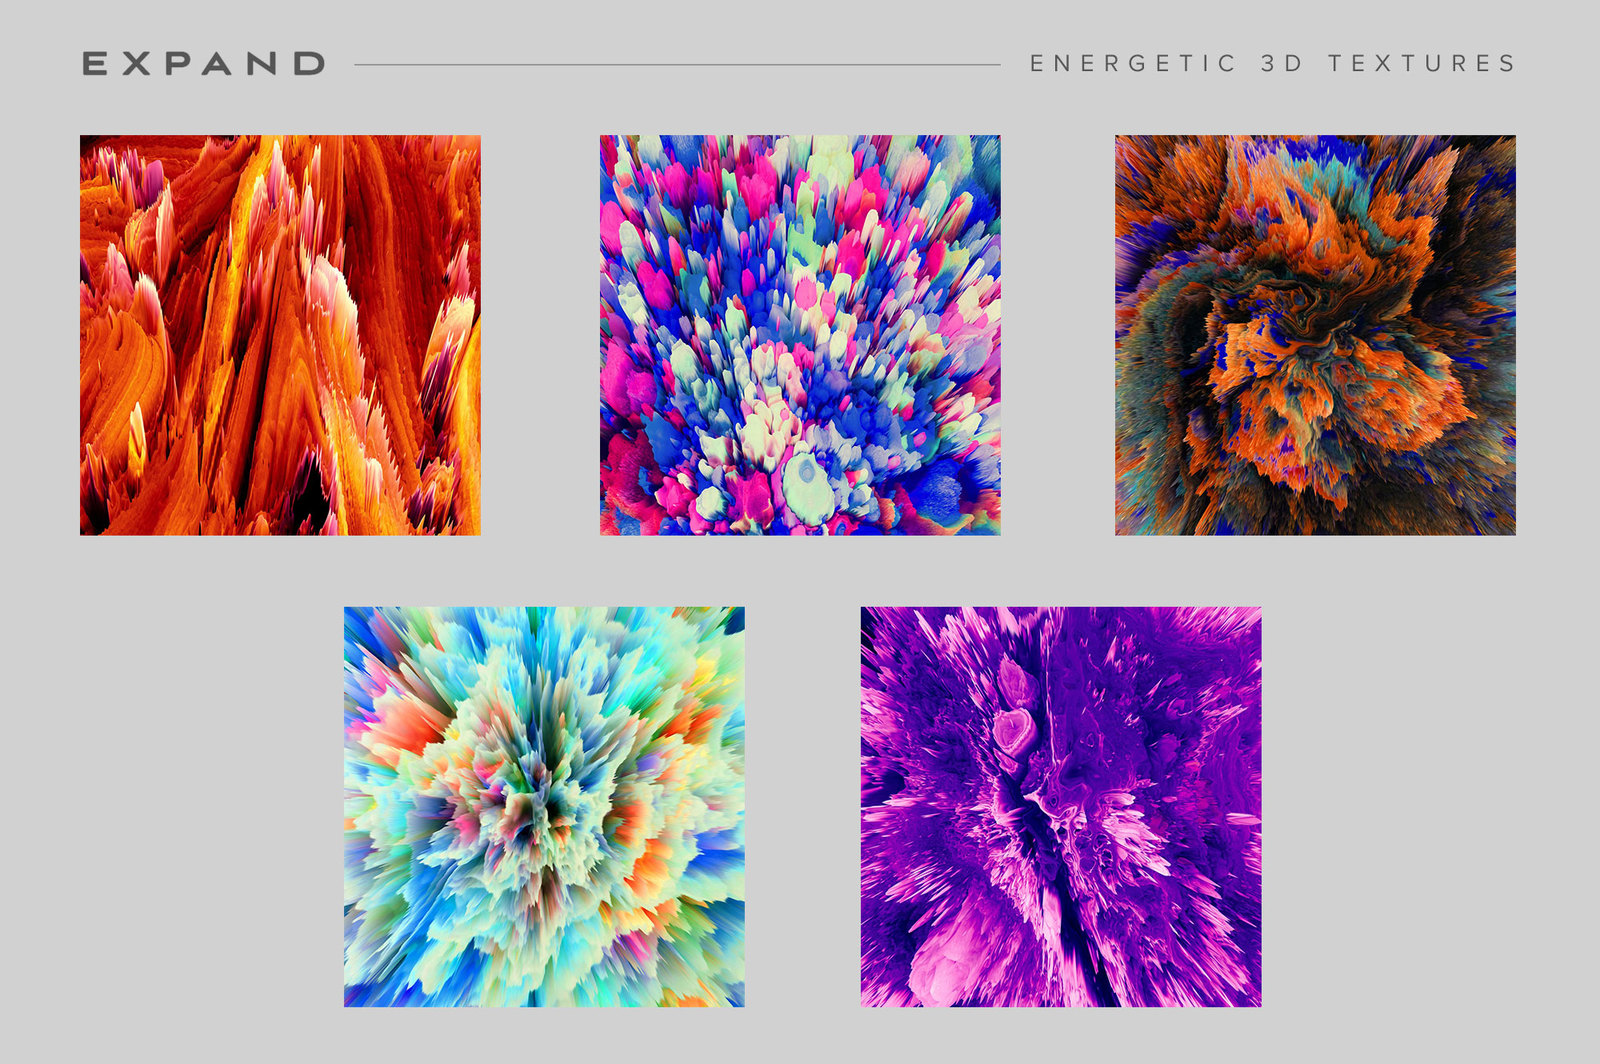 Expand: Energetic 3D Textures